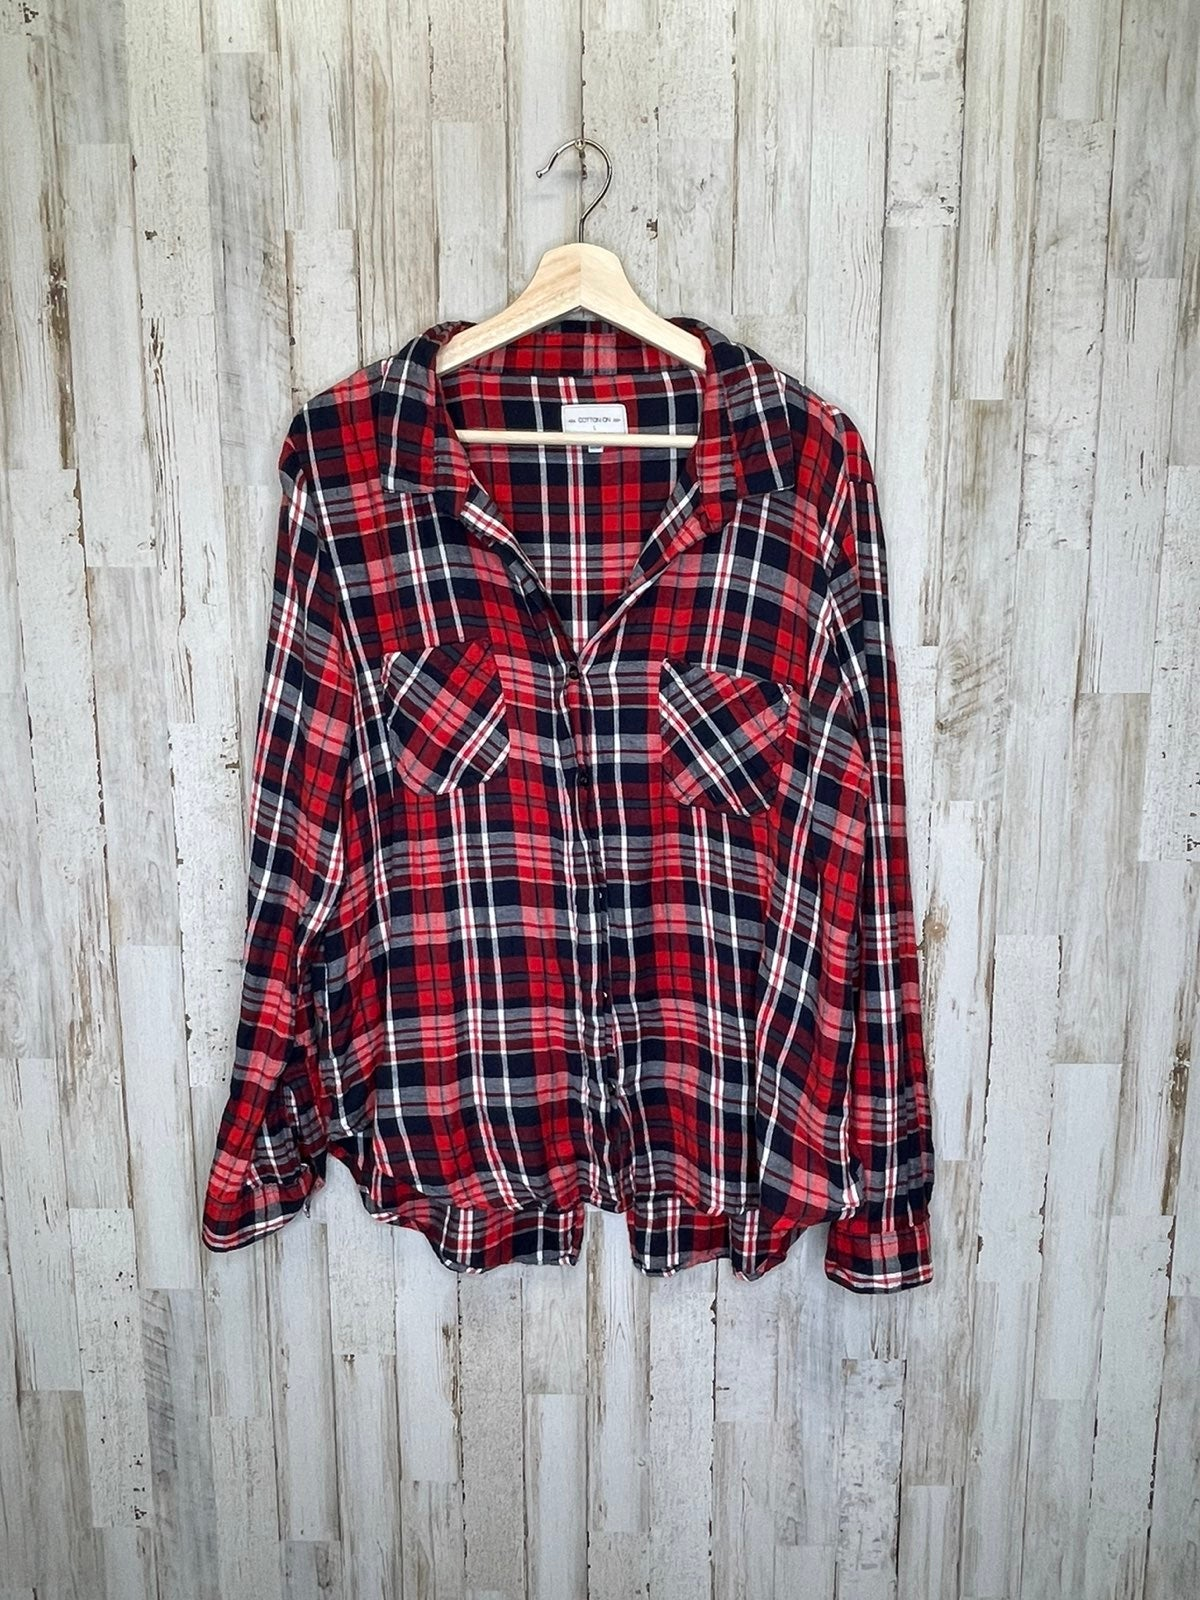 Cotton On large red plaid button up